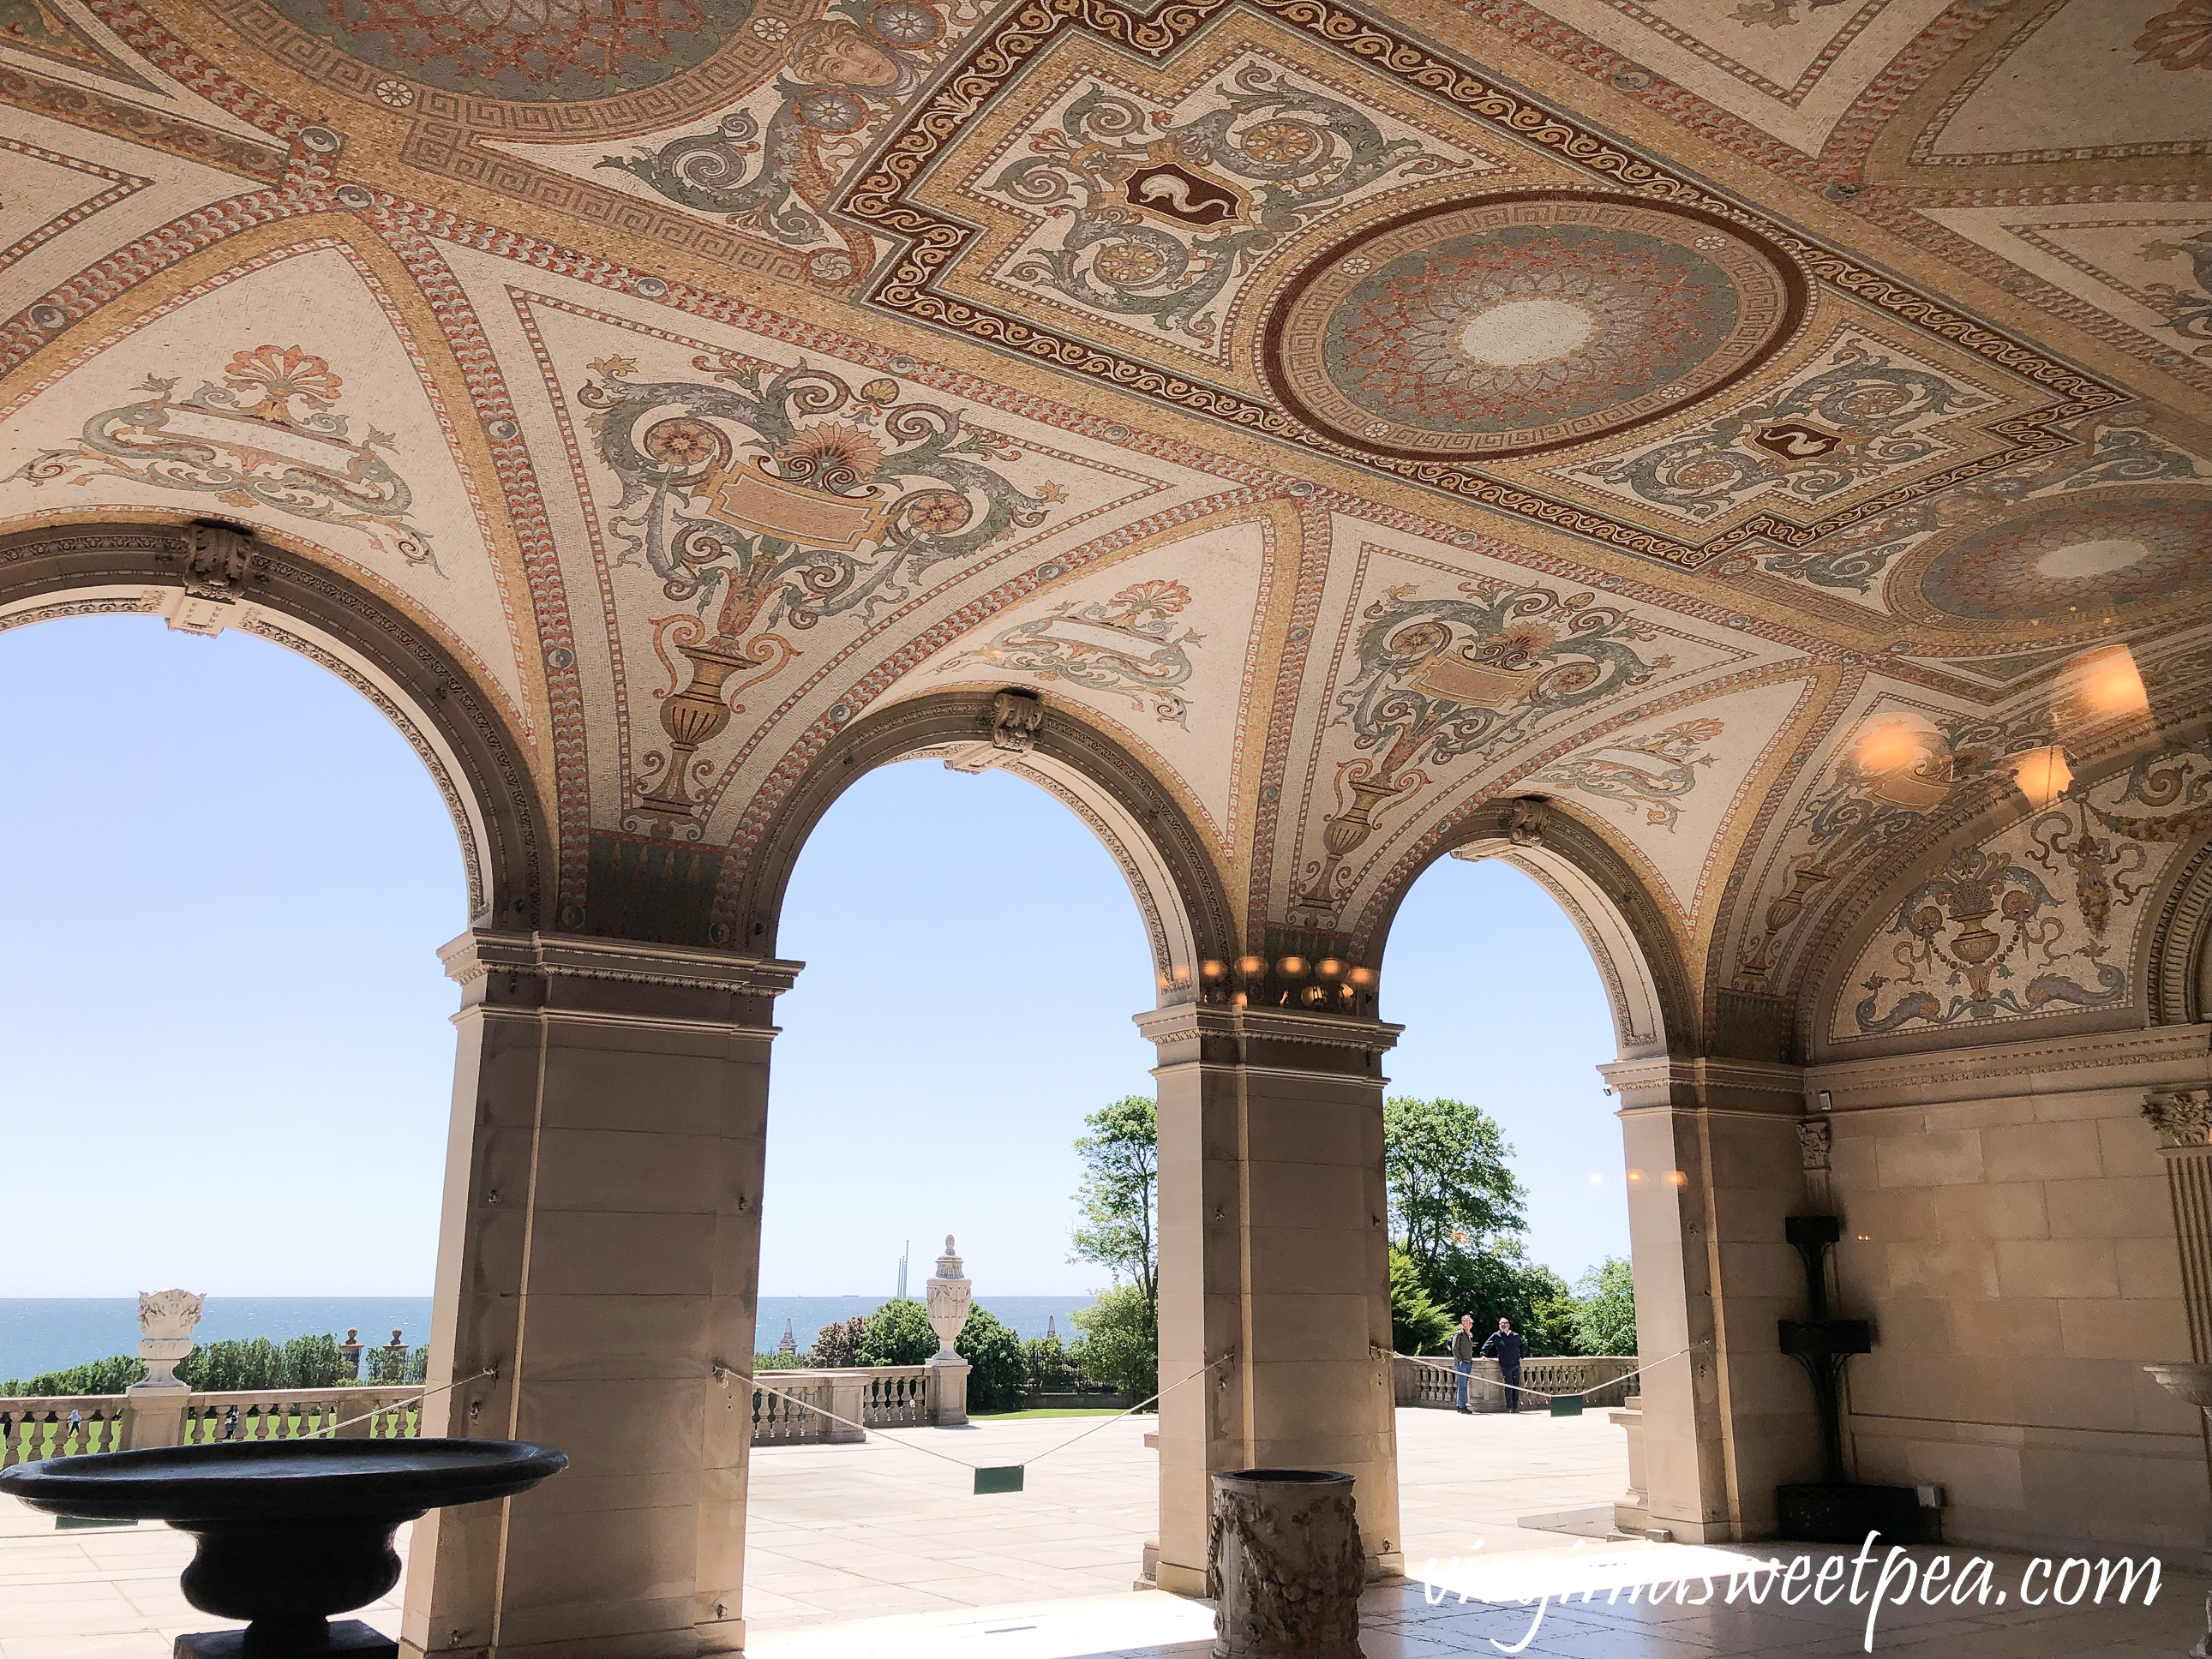 Lower loggia of The Breakers in Newport, RI